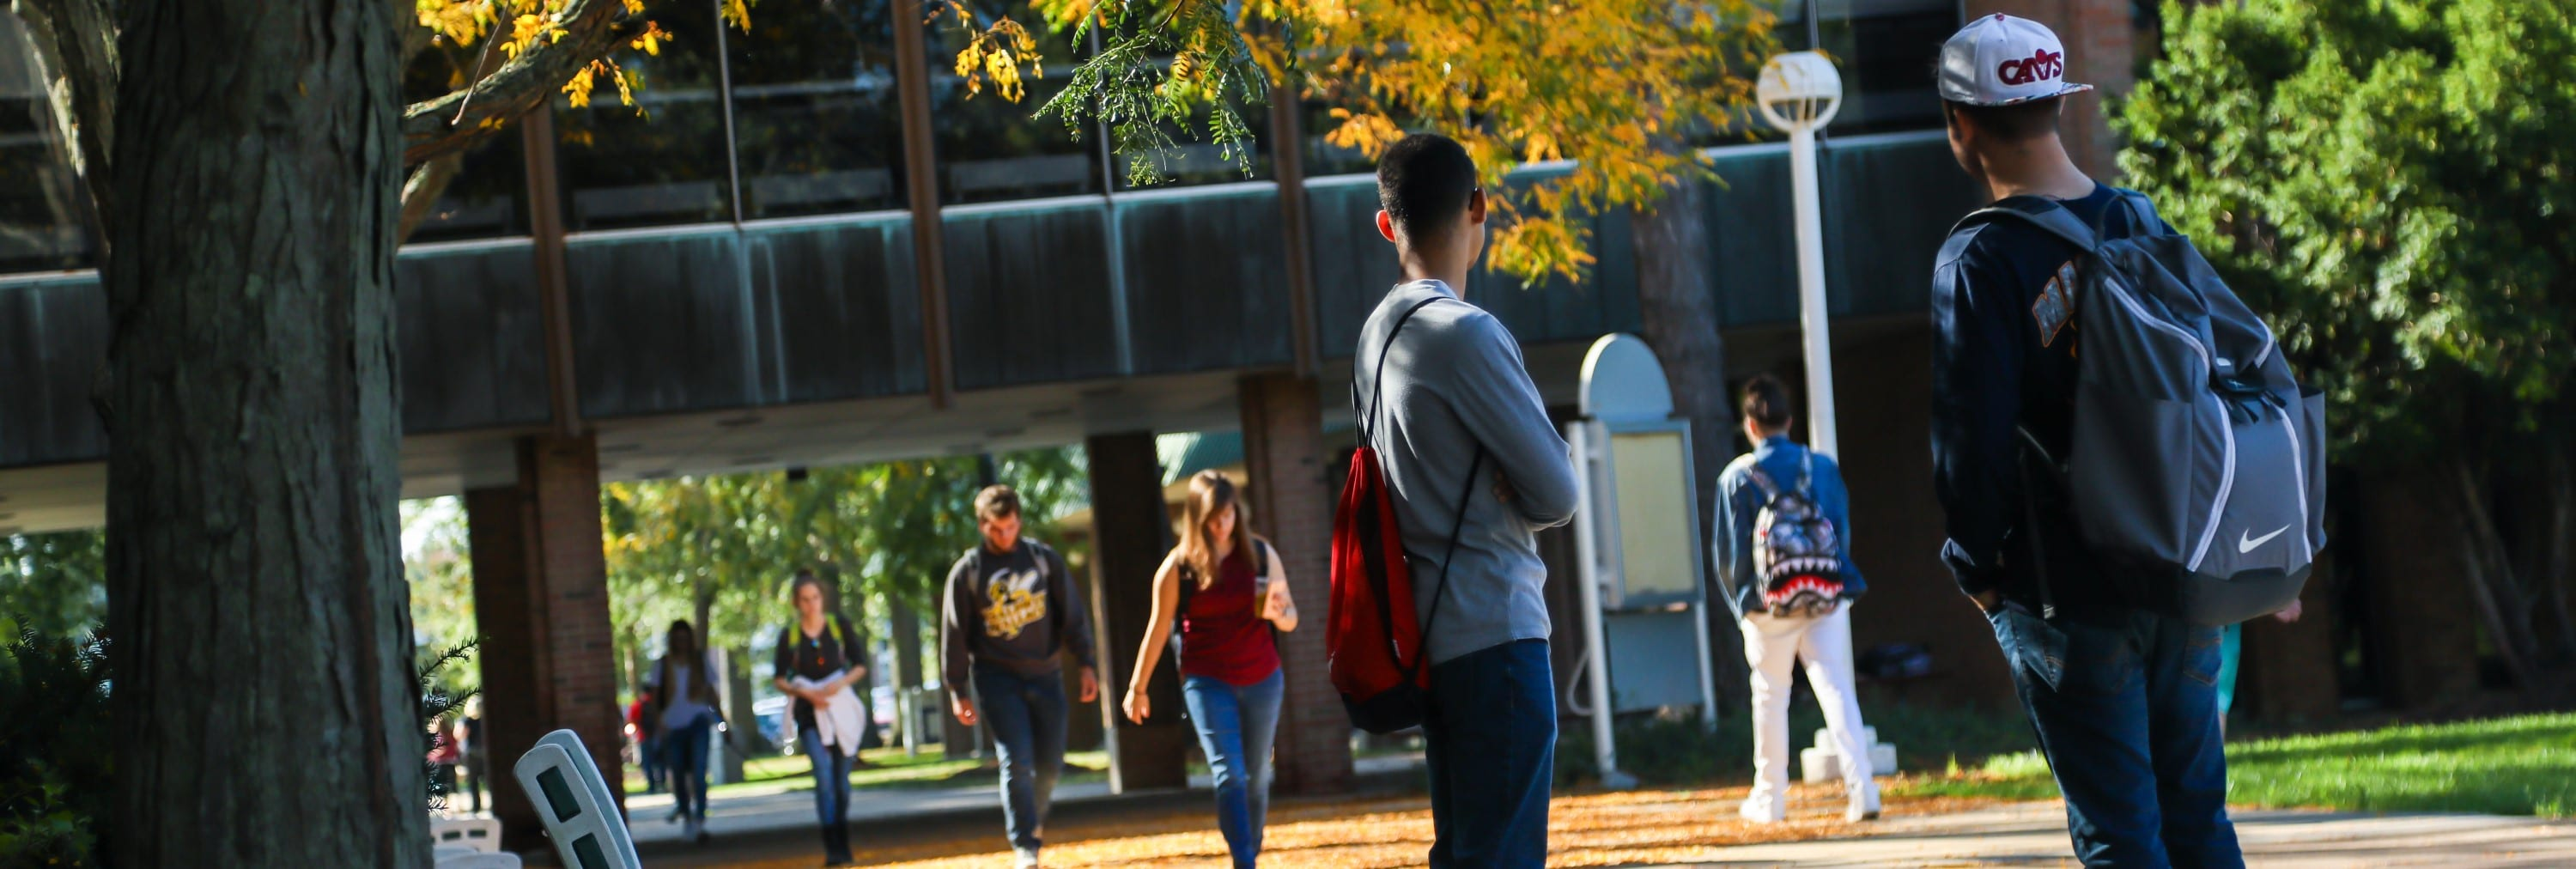 Students walking on campus on a fall day.